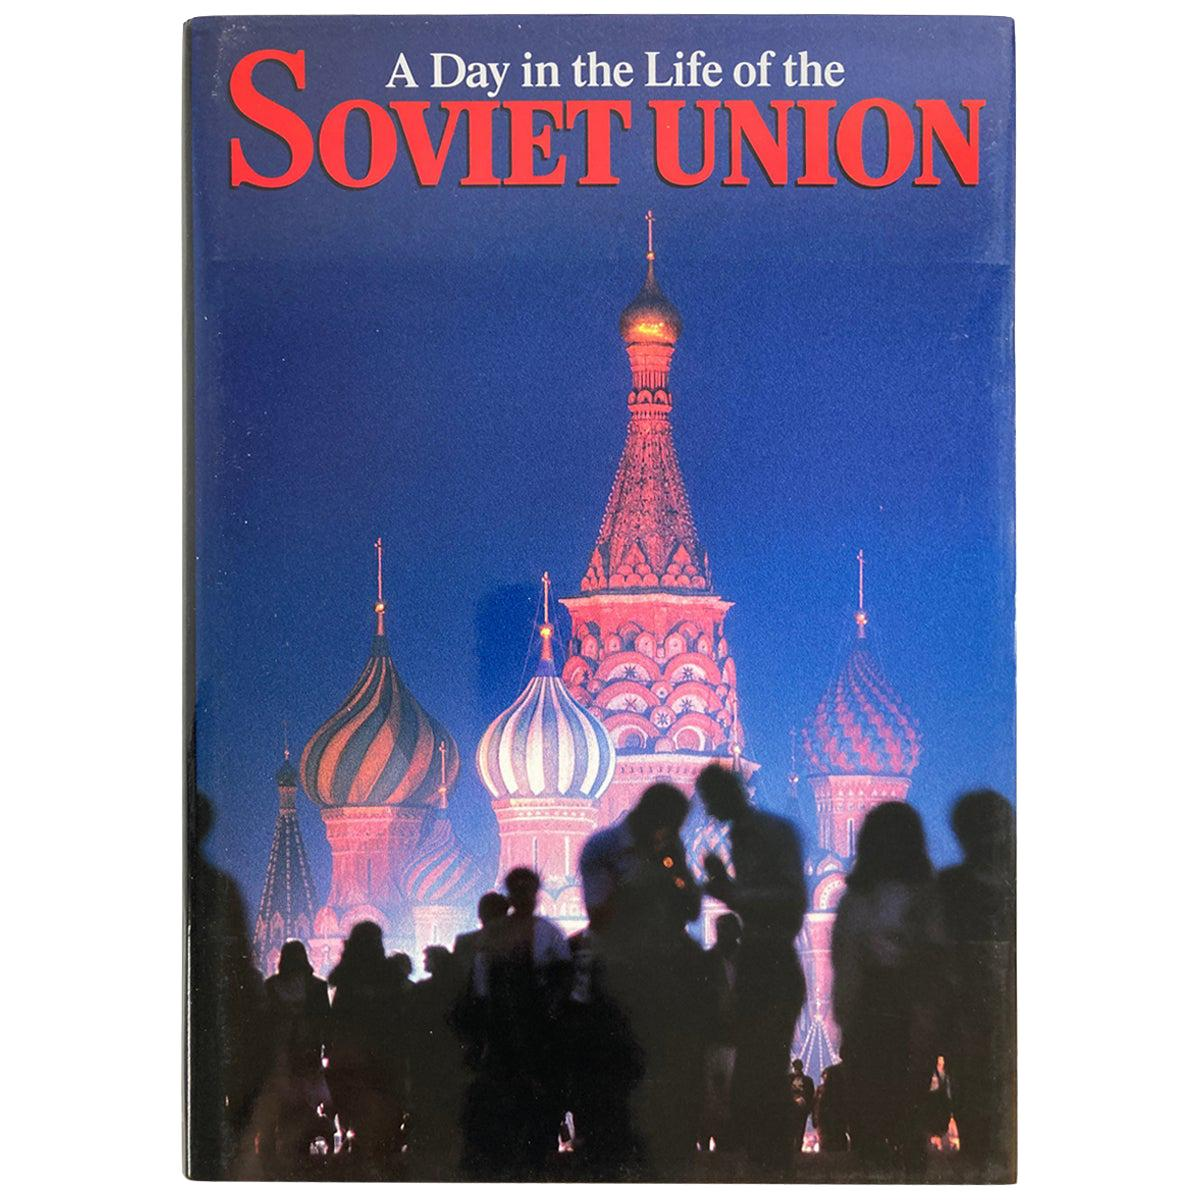 A Day in the Life of the Soviet Union Book by David Elliot Cohen Hardcover Book